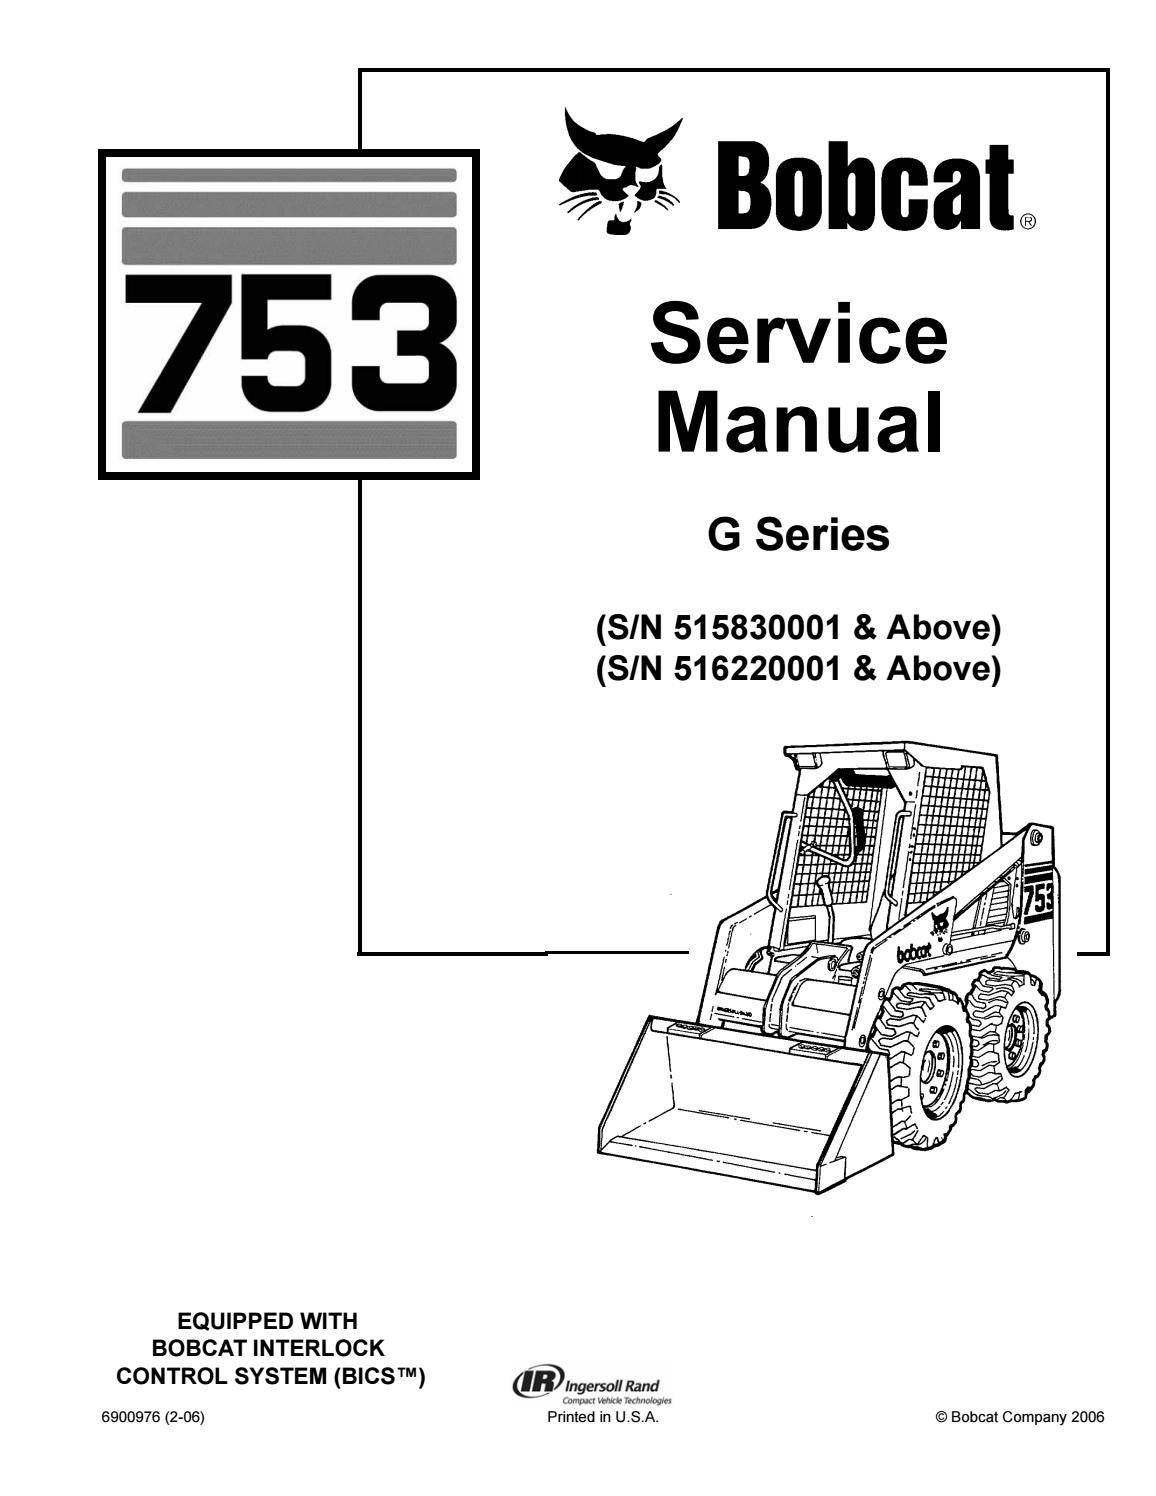 Bobcat 753 Skid Steer Loader Service Repair Manual  Sn 515830001  U0026 Above  Sn 516220001  U0026 Above